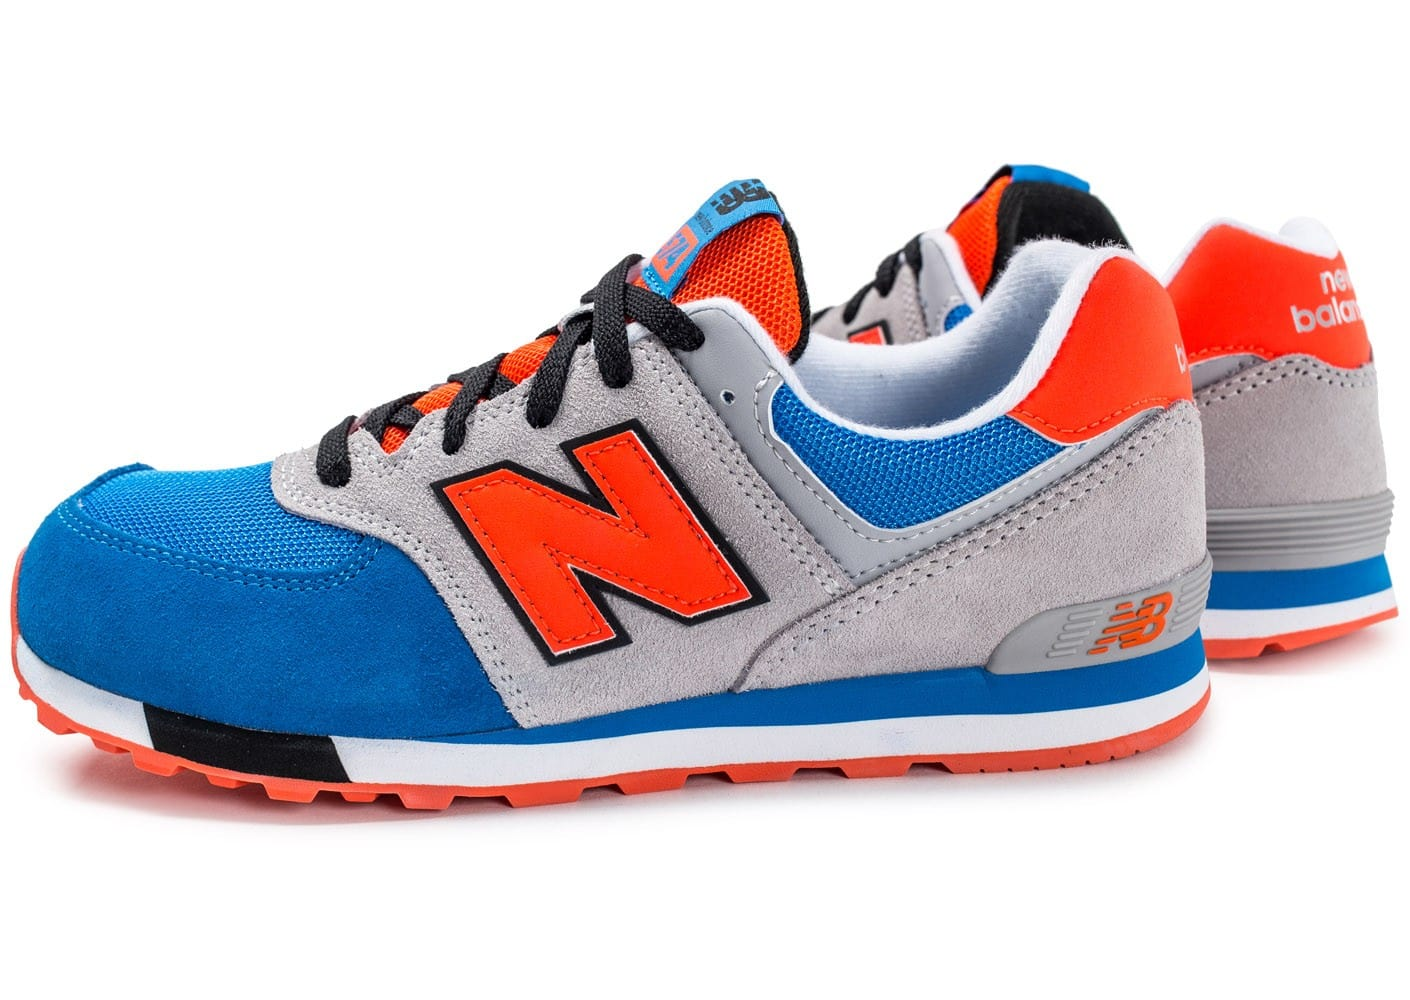 new balance kl574 grise orange et bleu chaussures enfant chausport. Black Bedroom Furniture Sets. Home Design Ideas